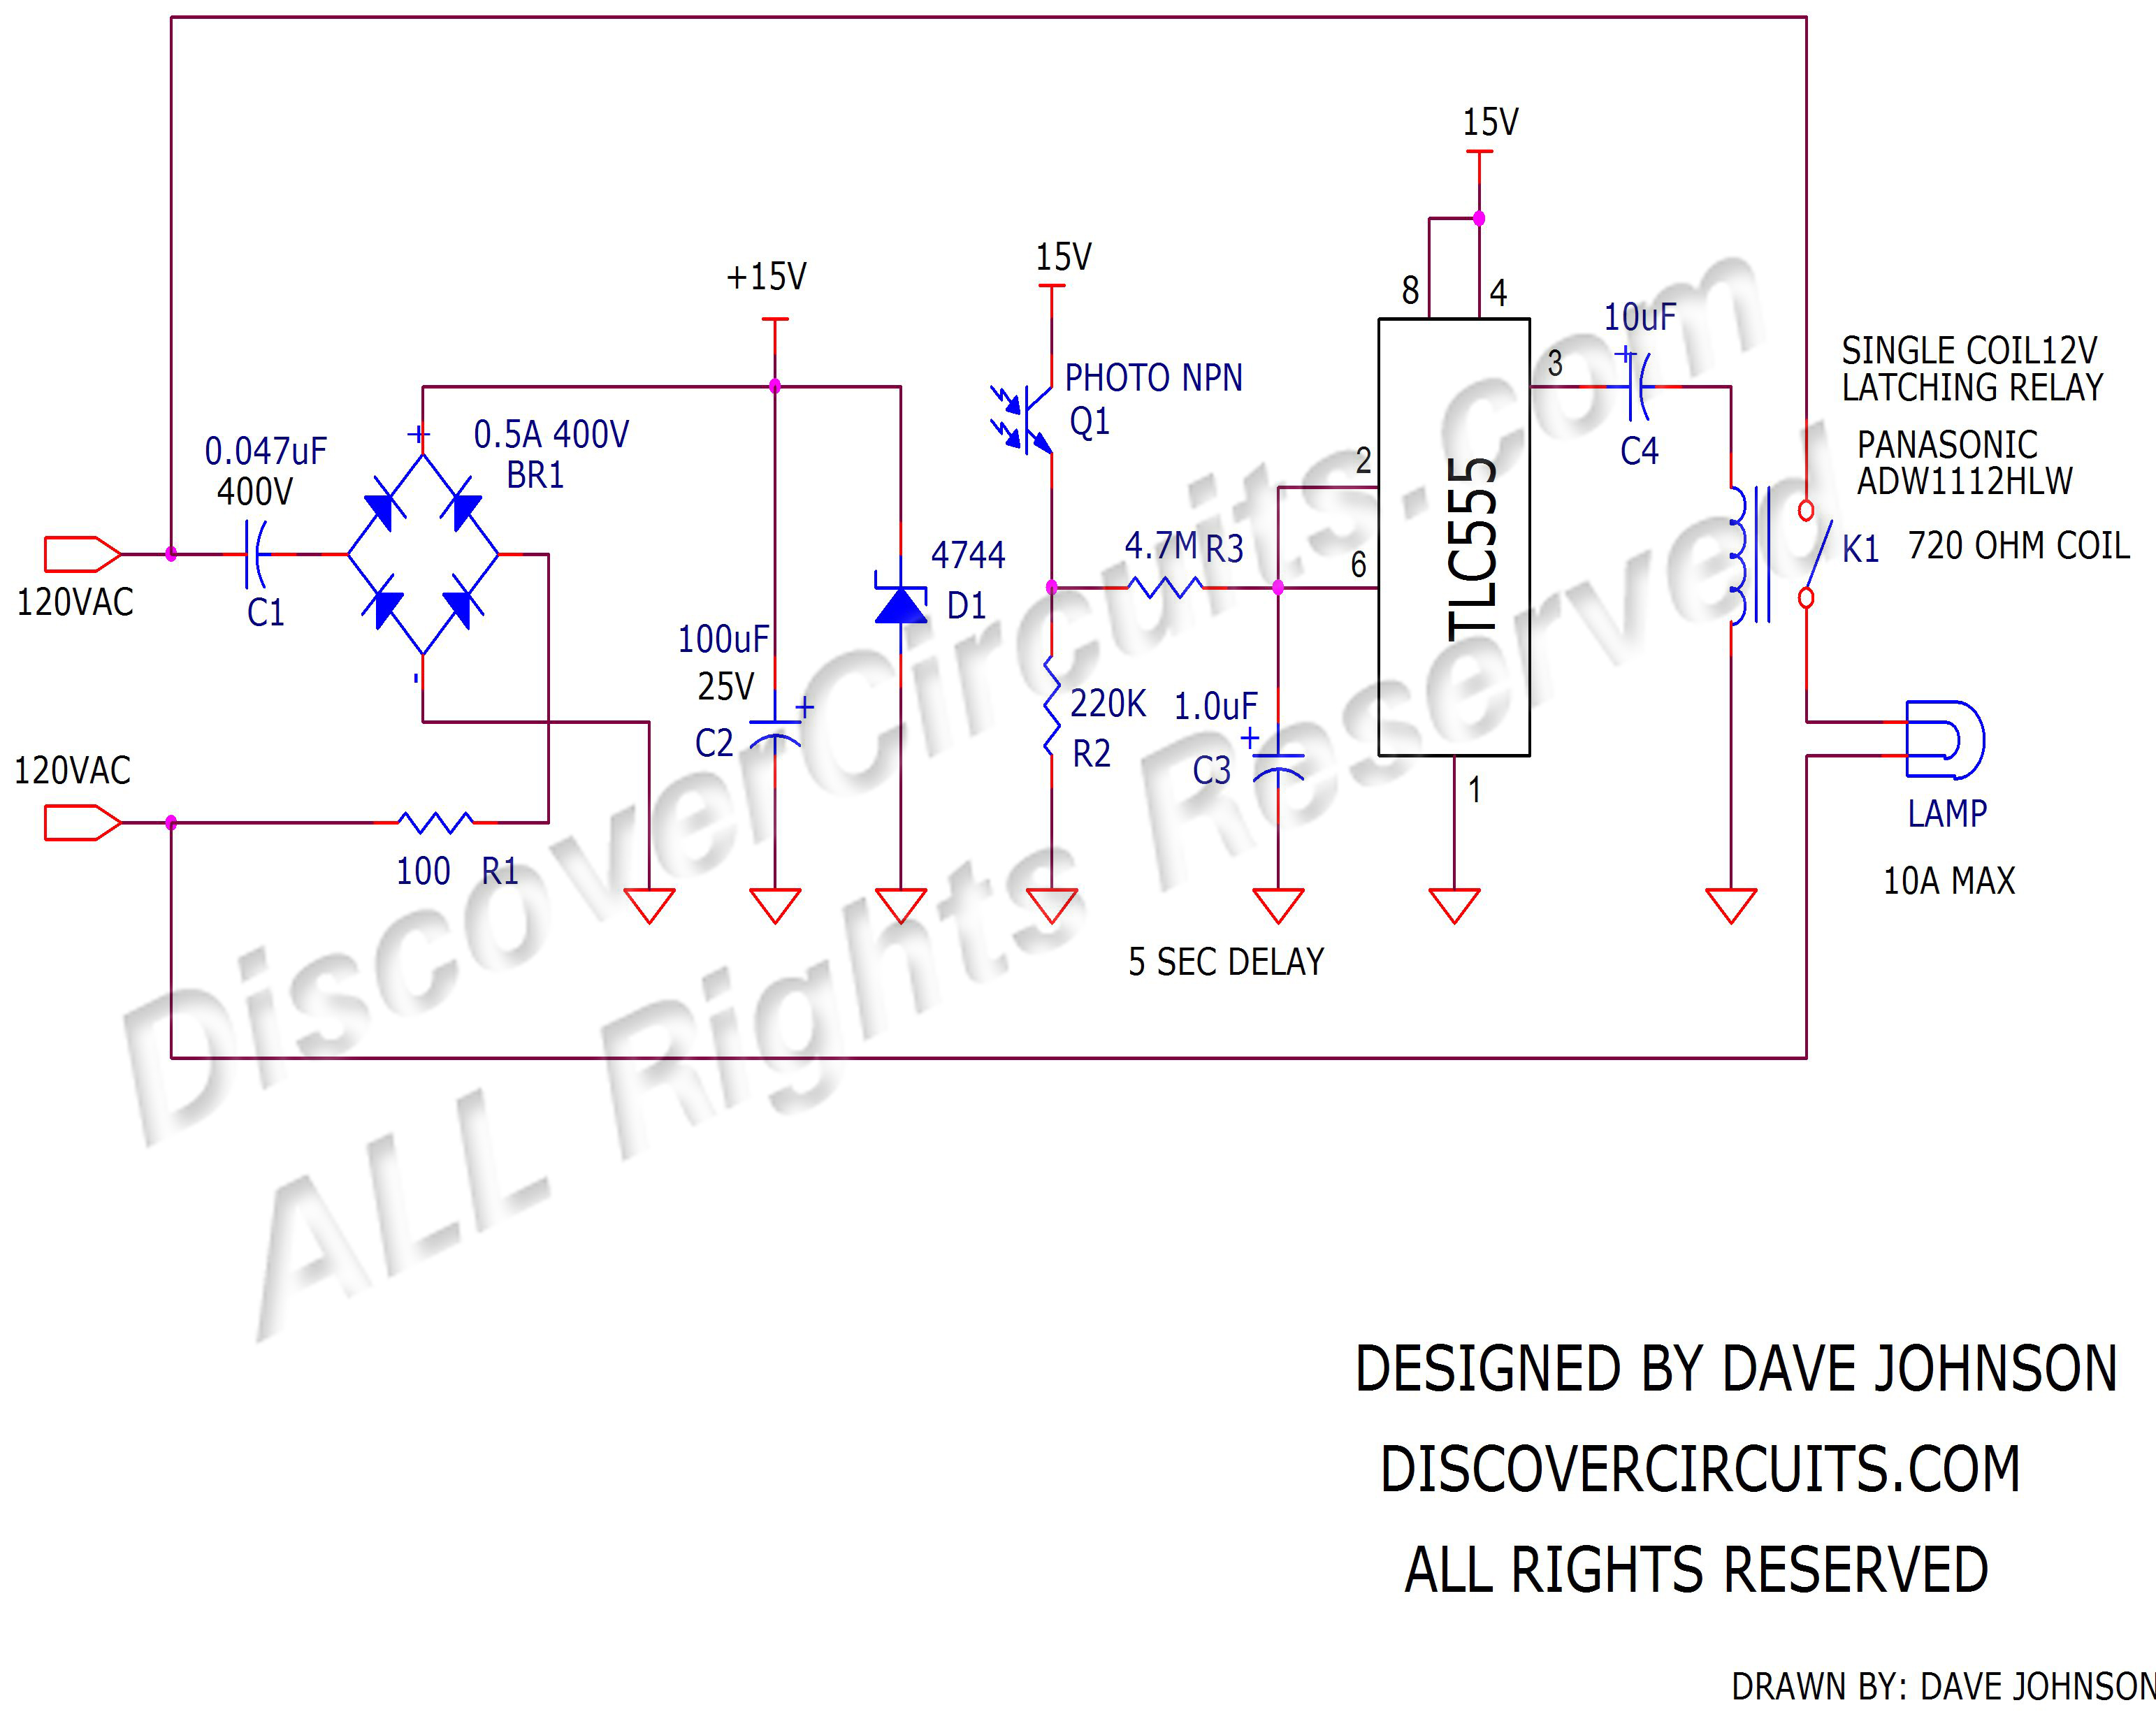 Dusk To Dawn Latching Relay Circuit Designed By David A Johnson Wiring Diagram For Timer Off Delay On Lights Click Drawing Below View Pdf Version Of Schematic